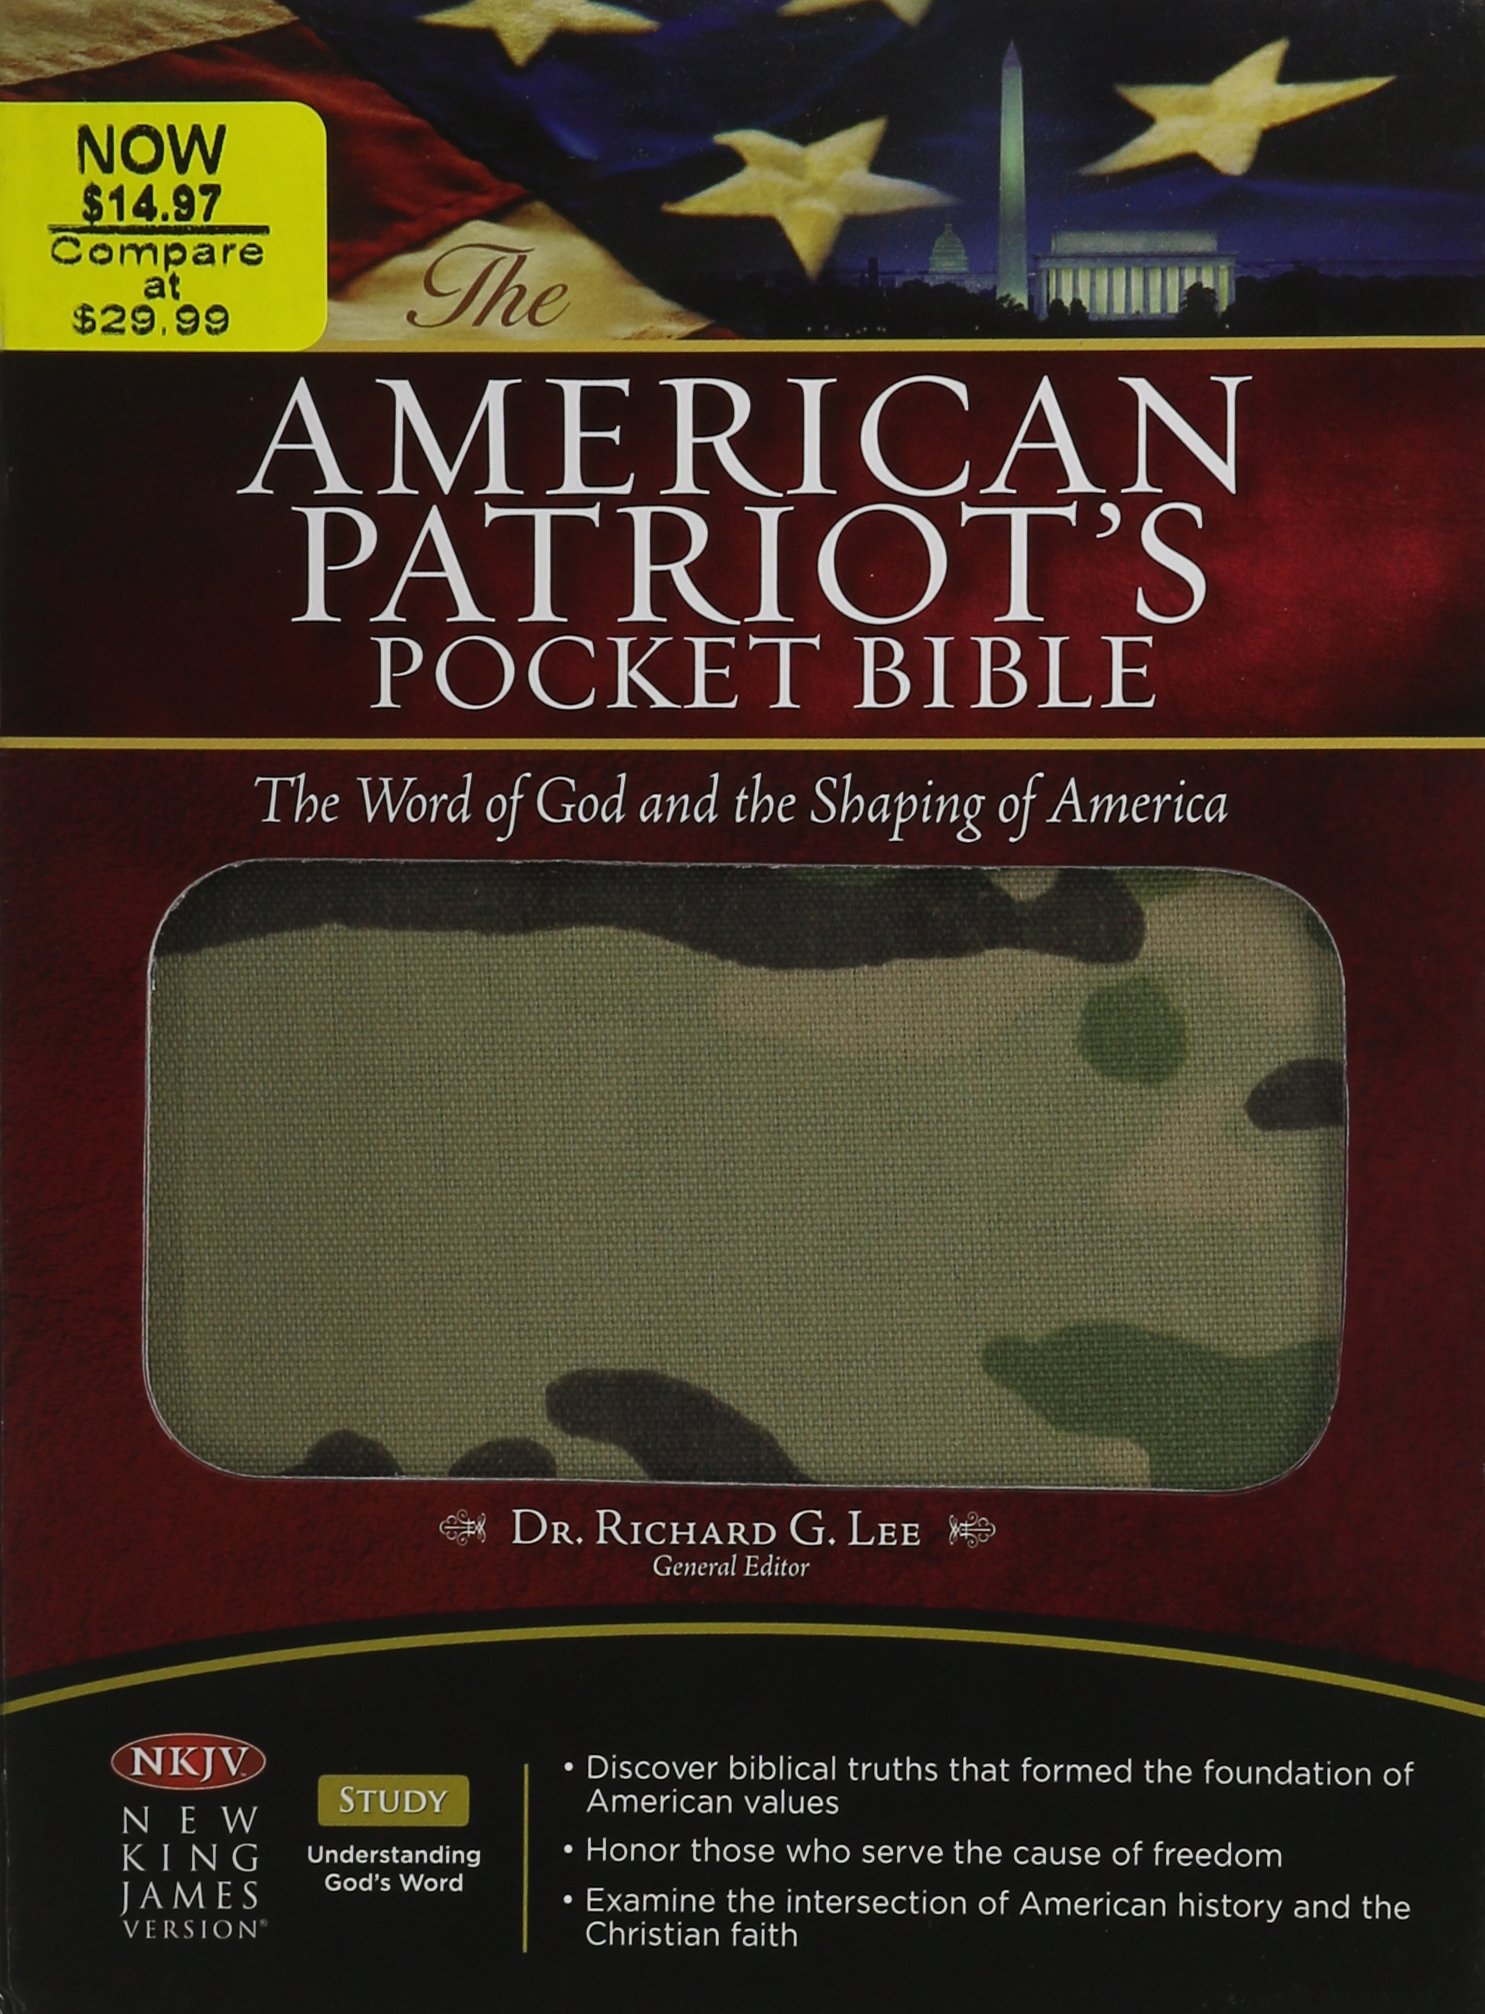 The American Patriot's Pocket Bible: New King James Verison, the Word of God and the Shaping of America pdf